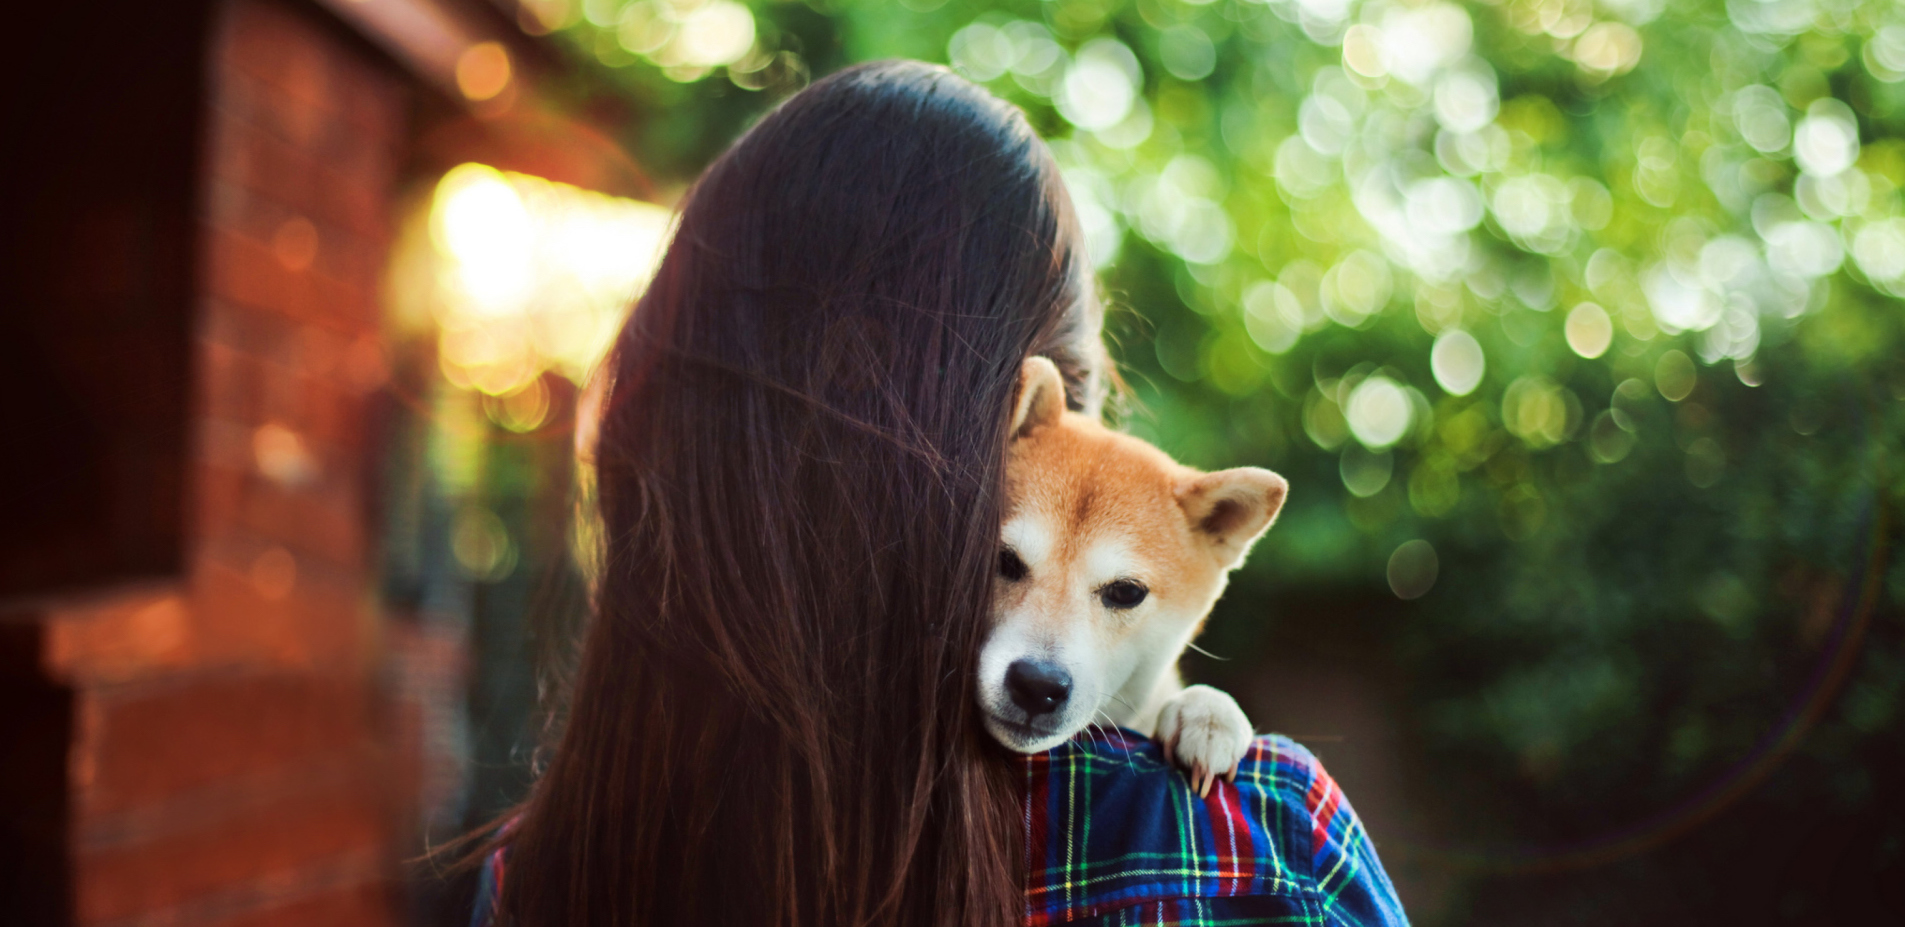 Emotional Support Animal Laws in Delaware